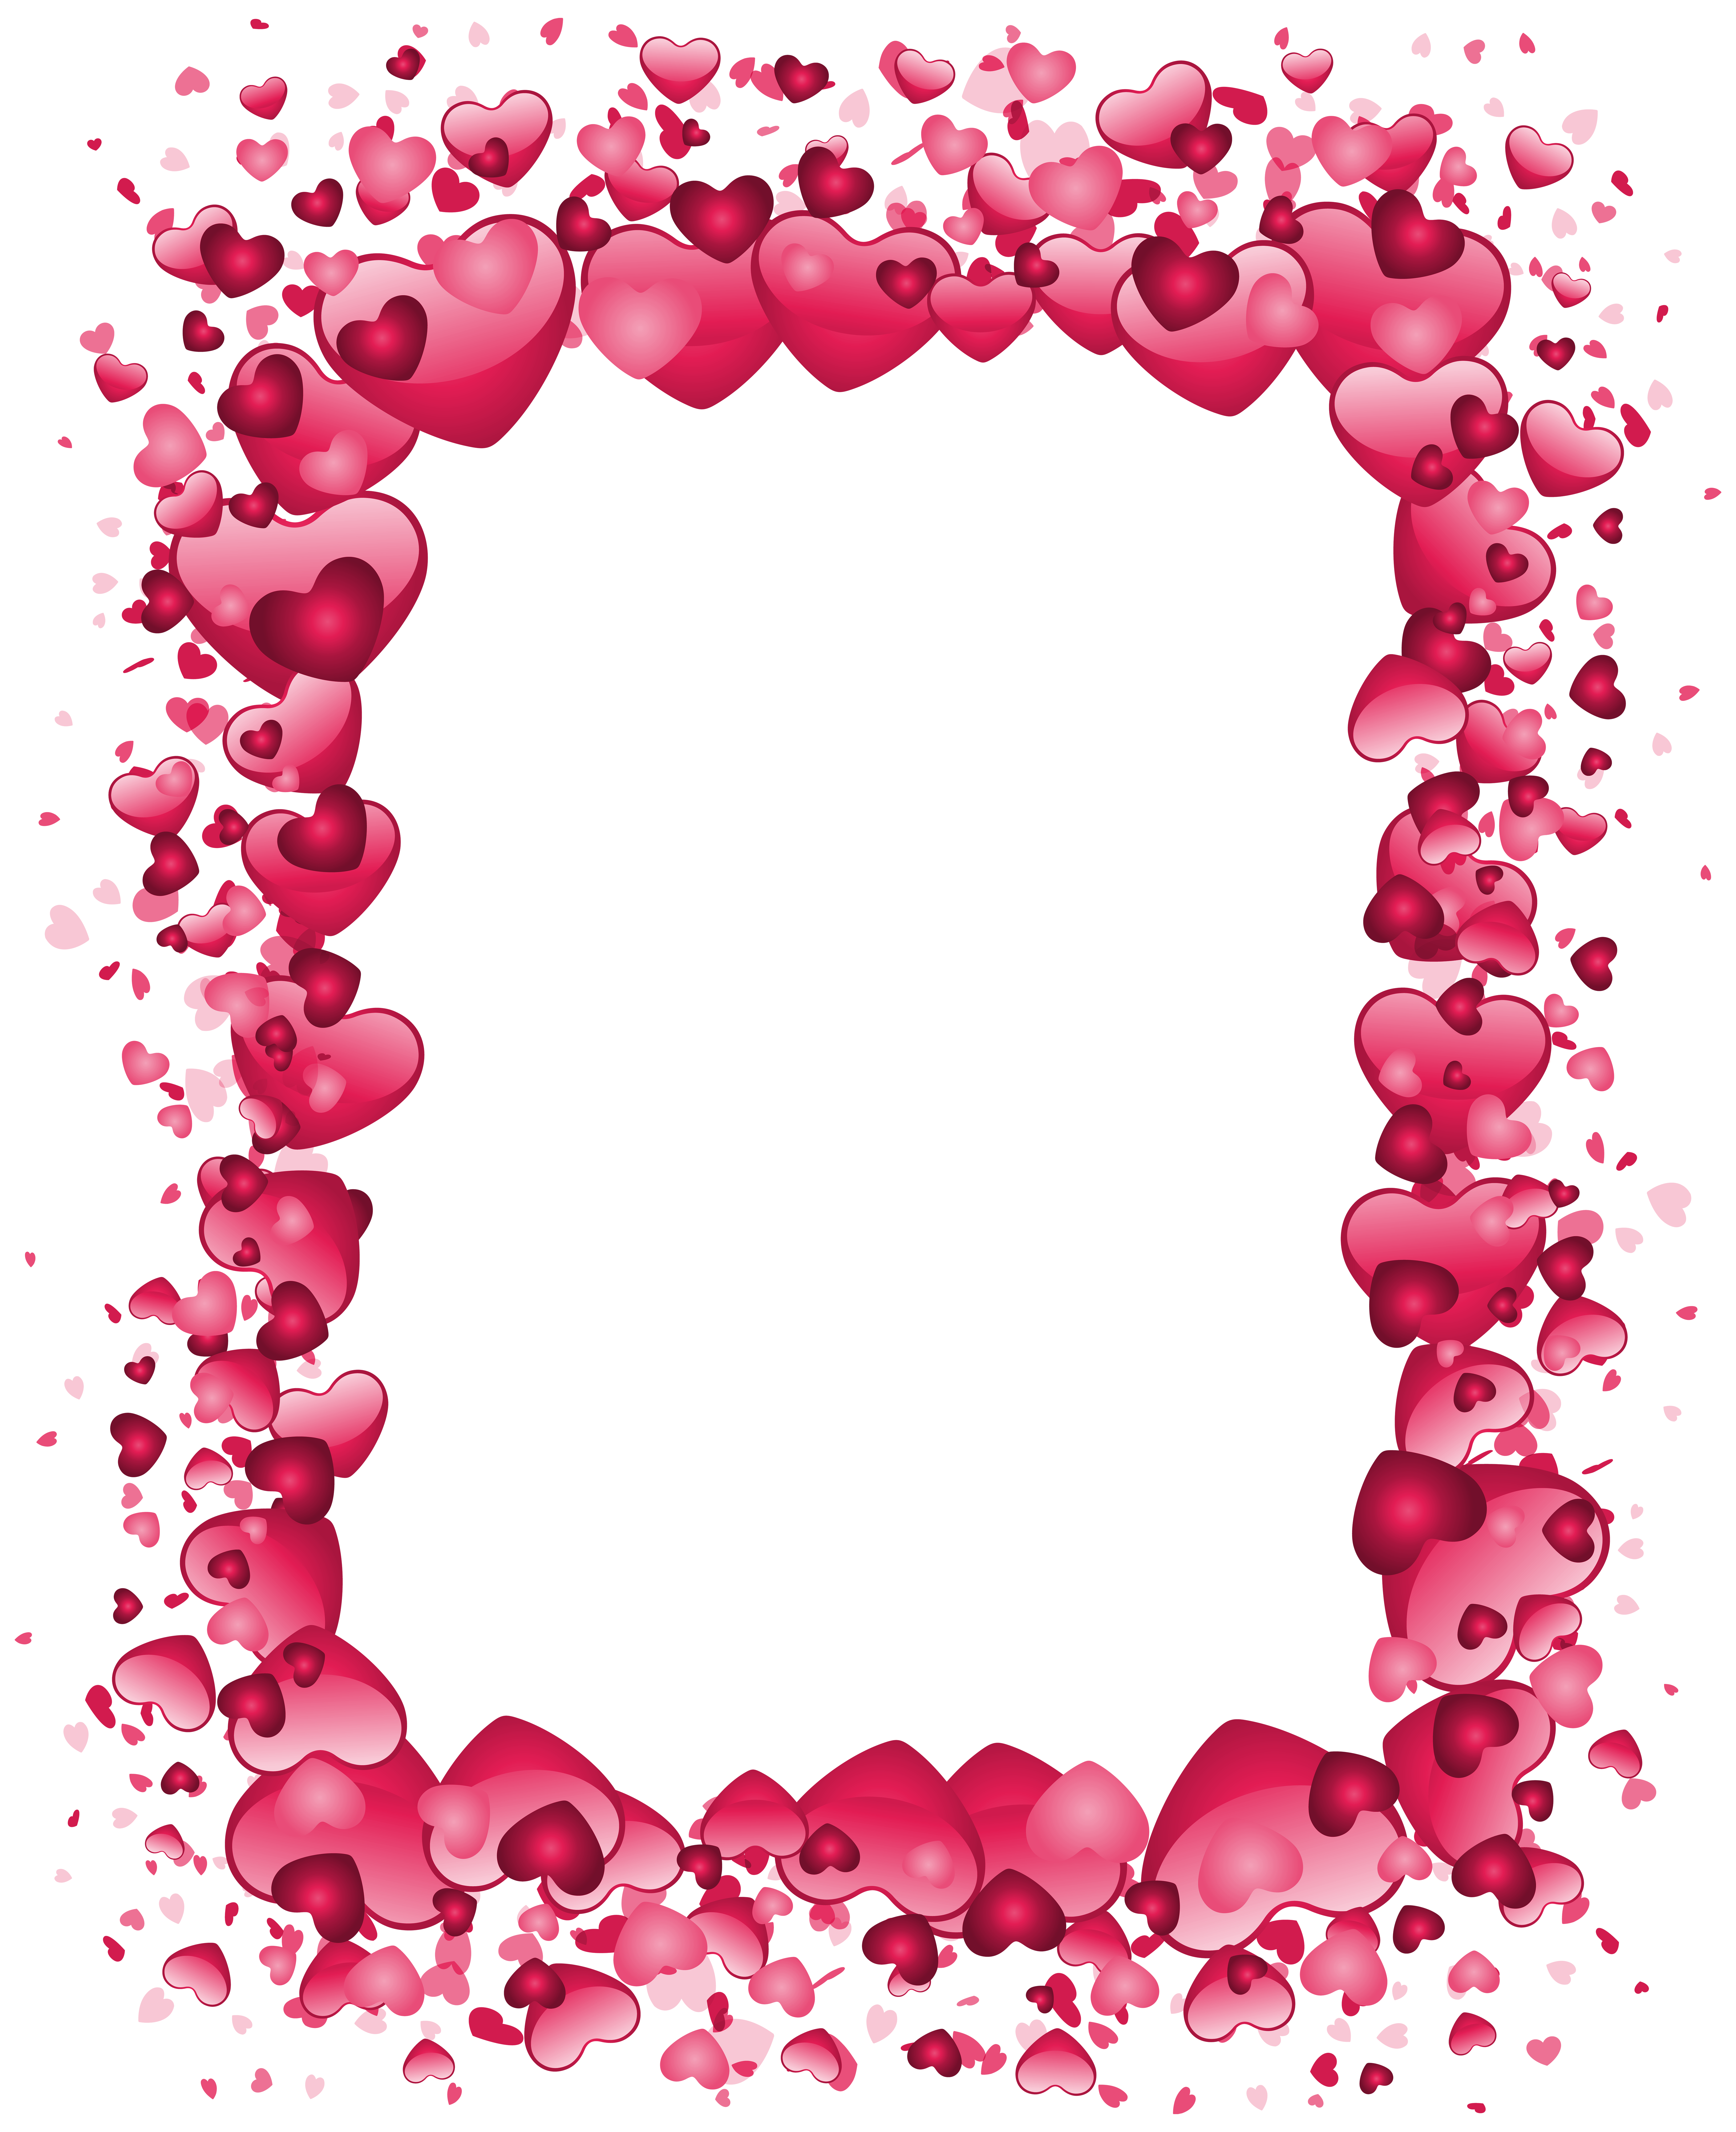 Heart border clipart images clipart royalty free Valentine\'s Day Pink Heart Border Transparent PNG Clip Art ... clipart royalty free